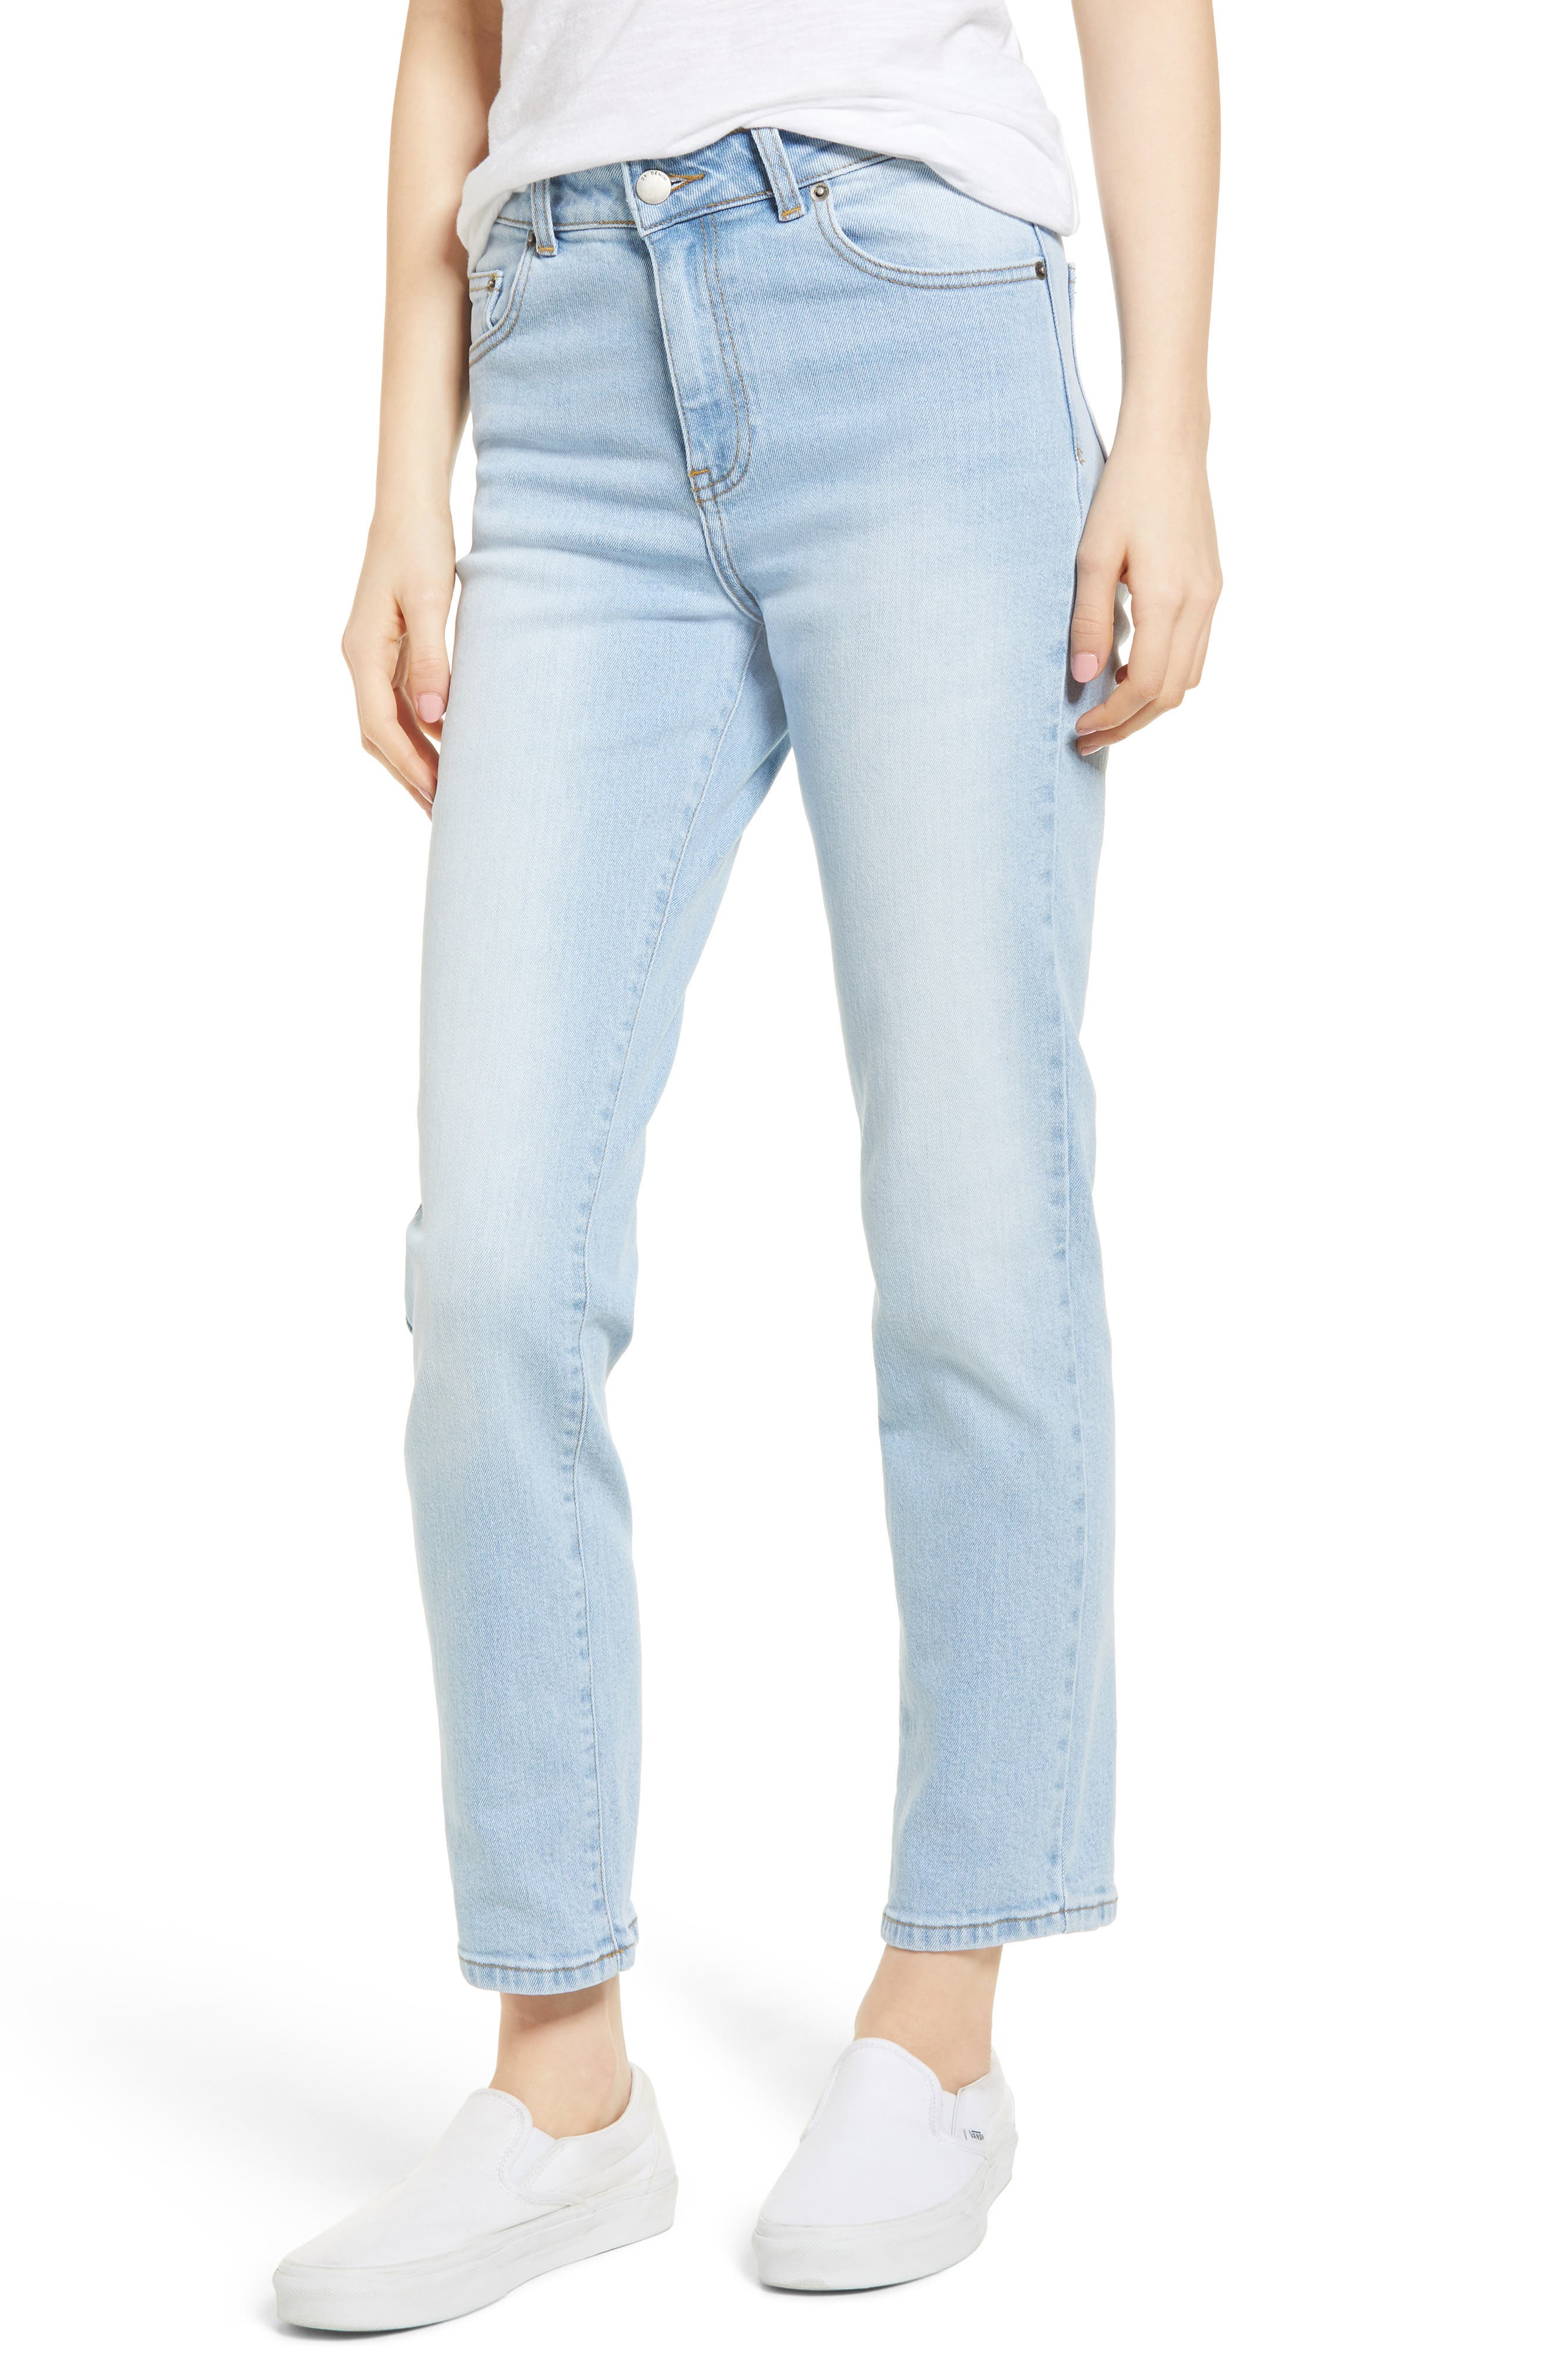 Dr. Denim Jeansmaker Edie High Waist Crop Straight Leg Jeans (Shaded Light Blue)